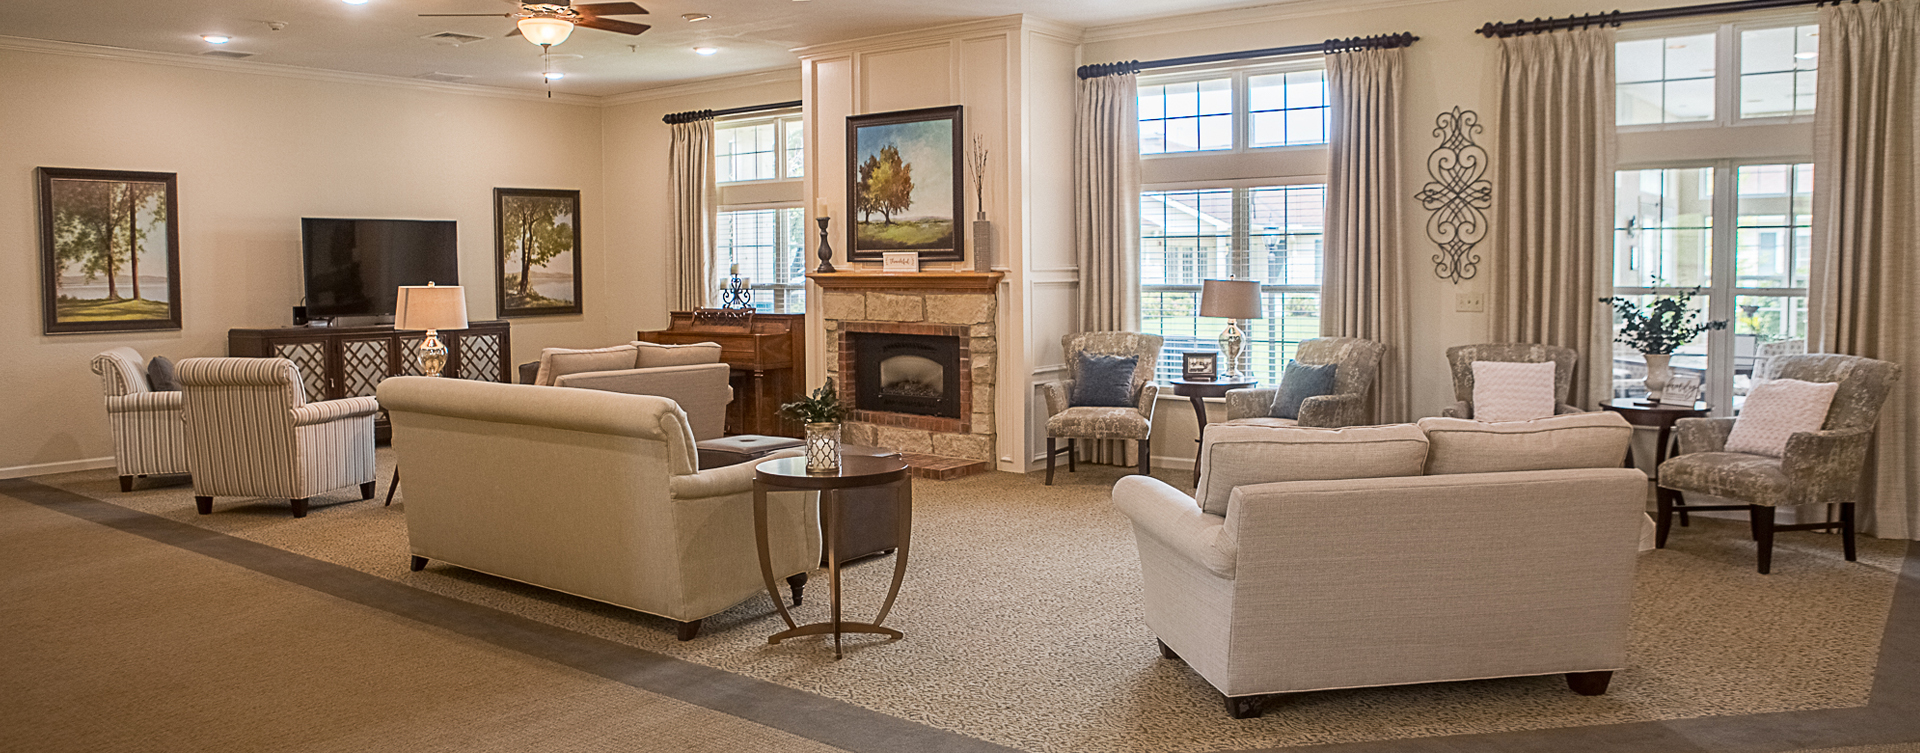 Snooze in your favorite chair in the living room at Bickford of Clinton